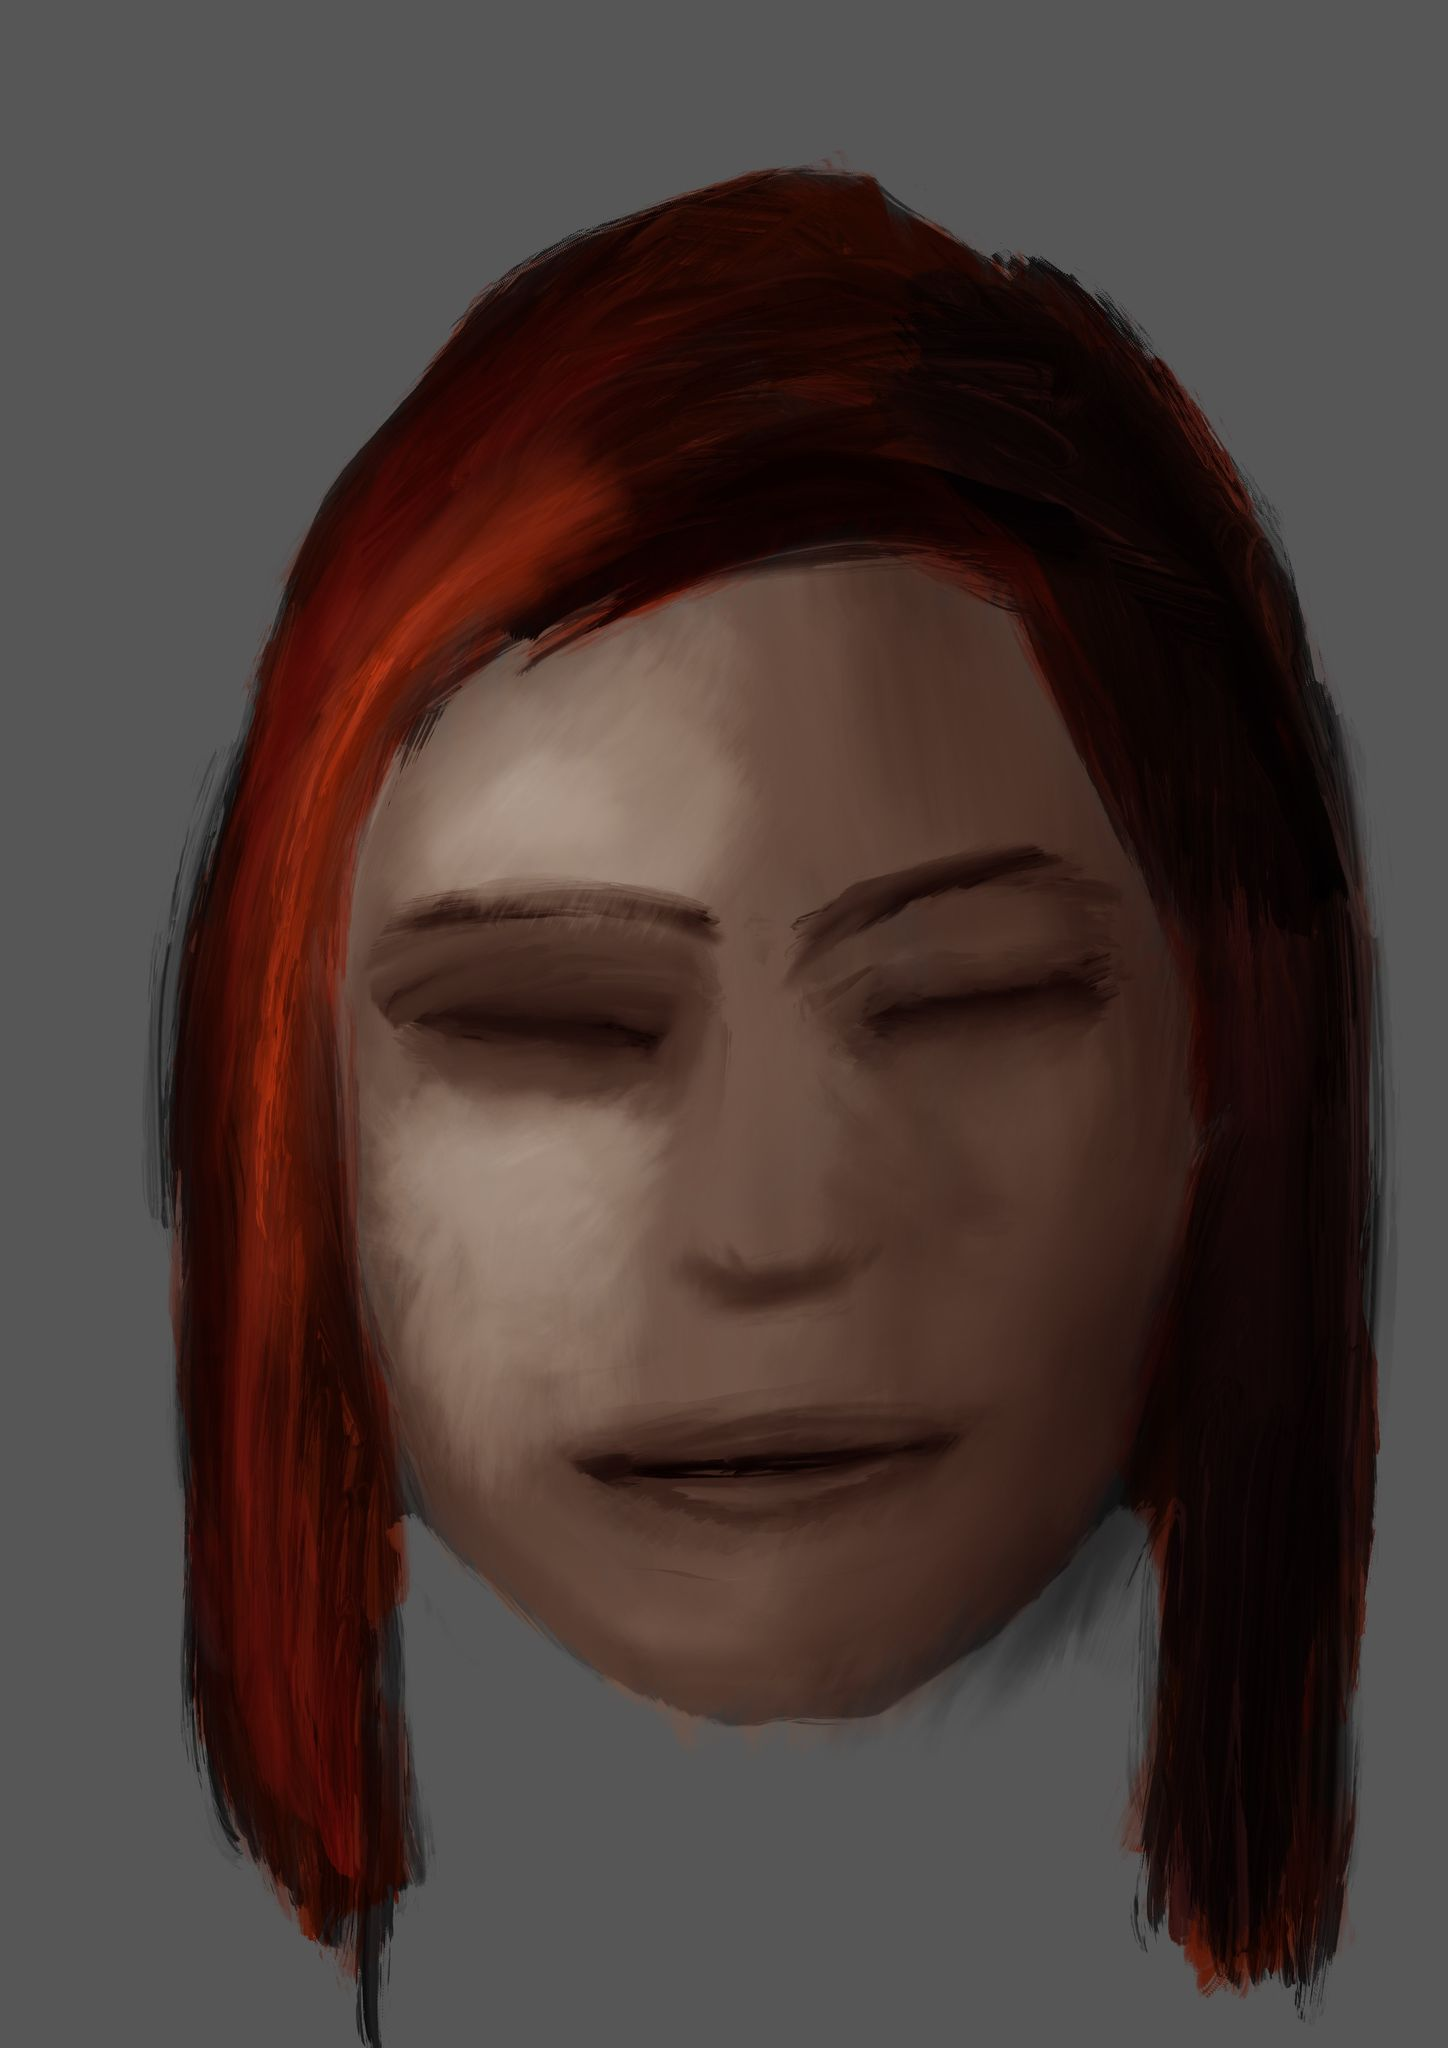 A painting of the head of a woman with her eyes shut. She has red hair and only the left side of her face is being lit.